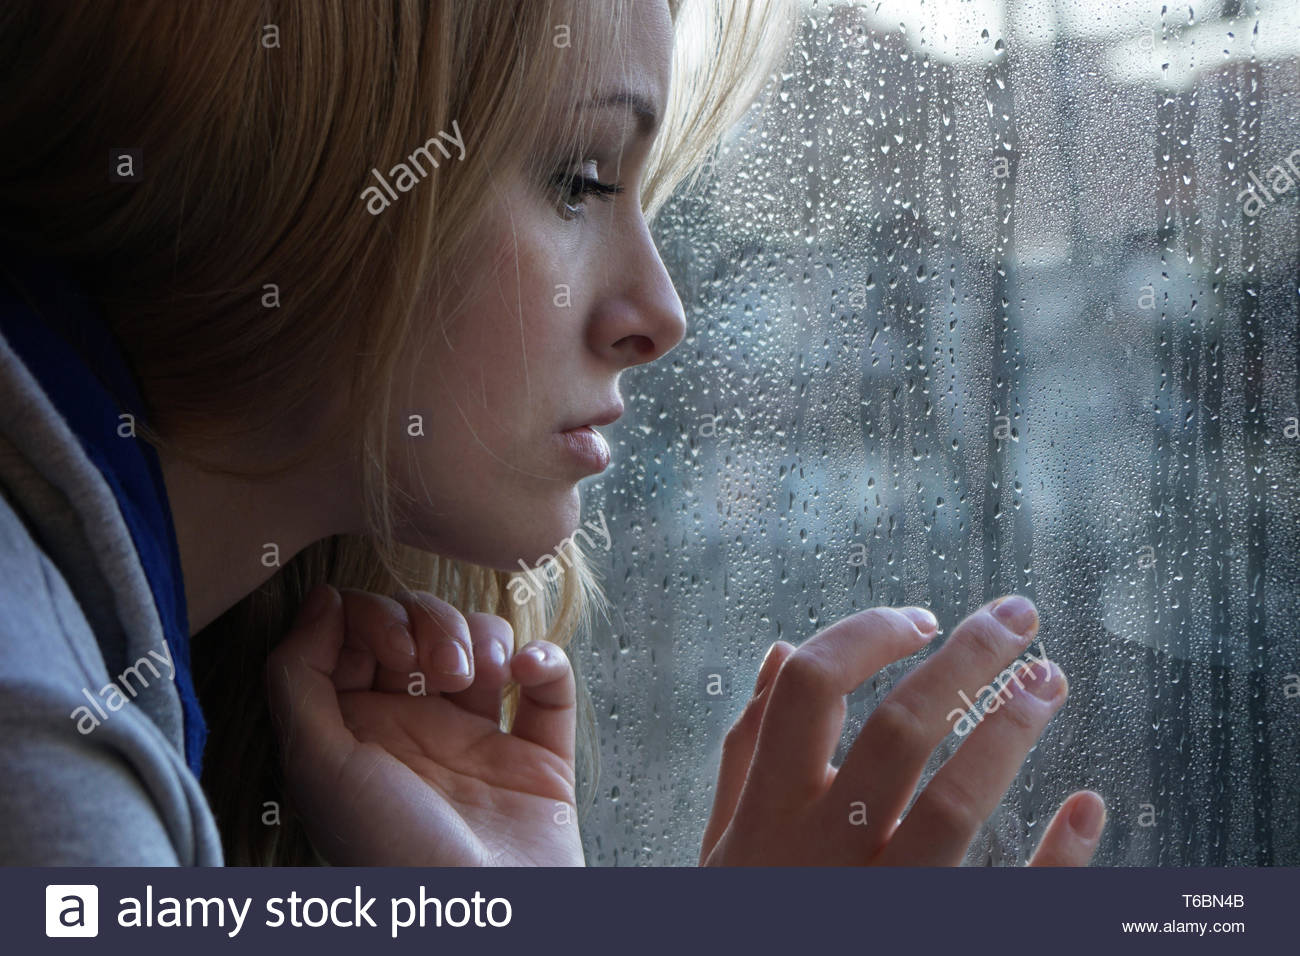 sad young woman looking through window on rainy day - Stock Image